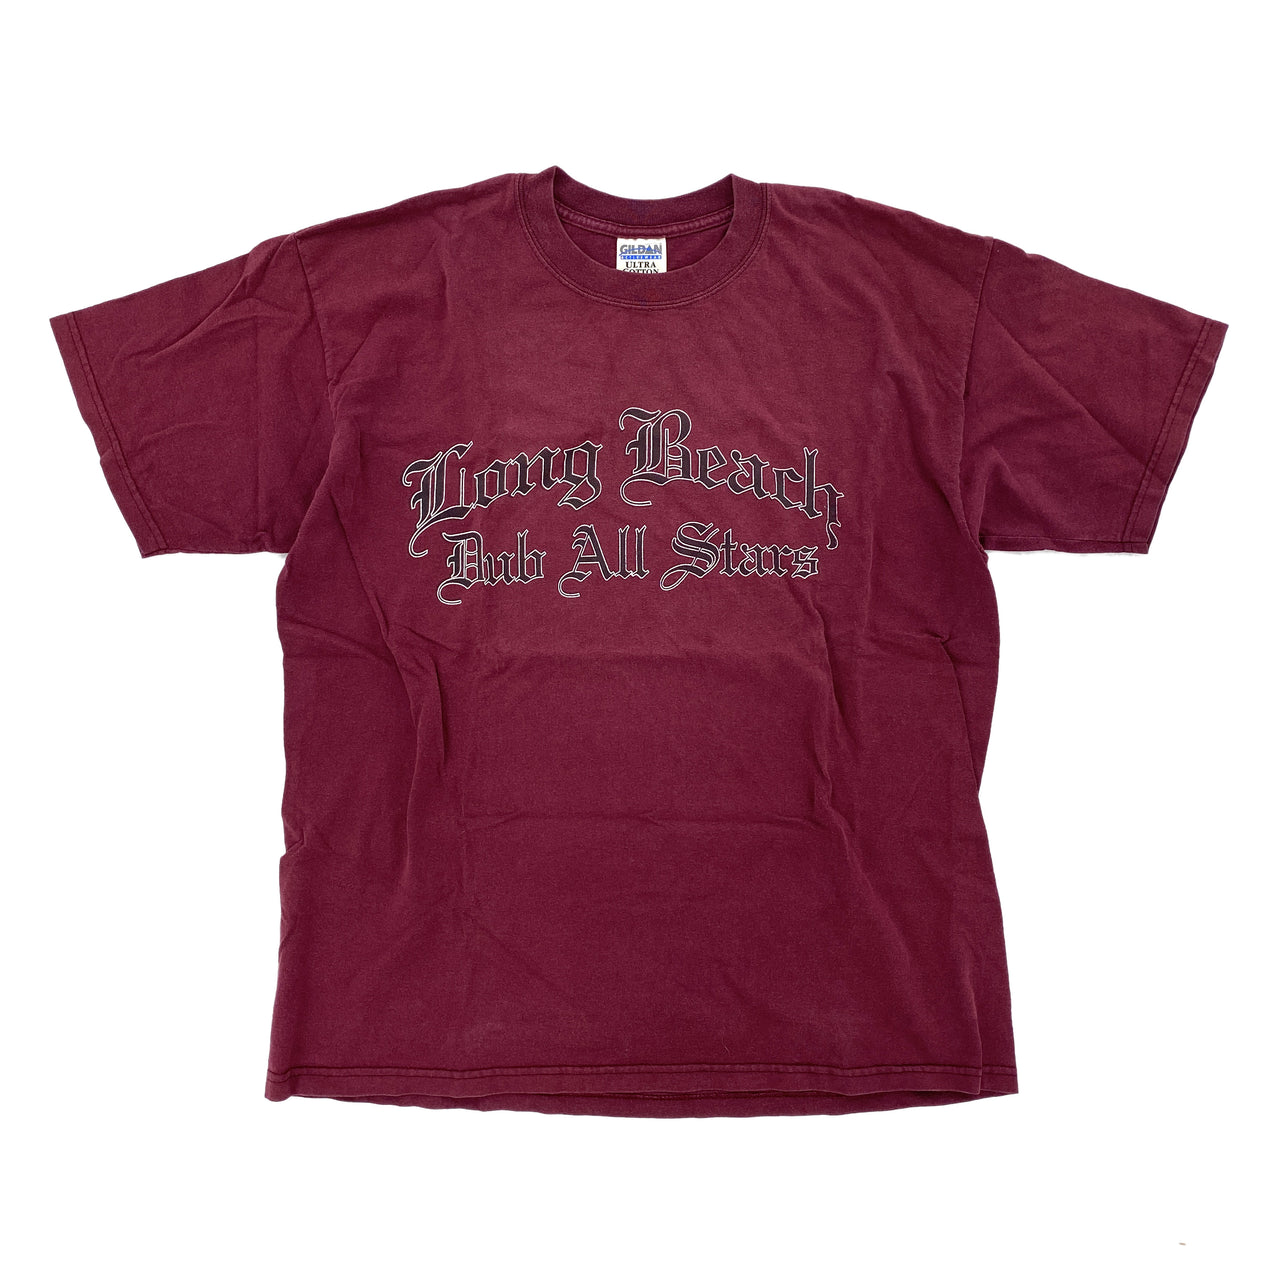 2001 LONG BEACH DUB ALLSTARS 'PROMO' TEE